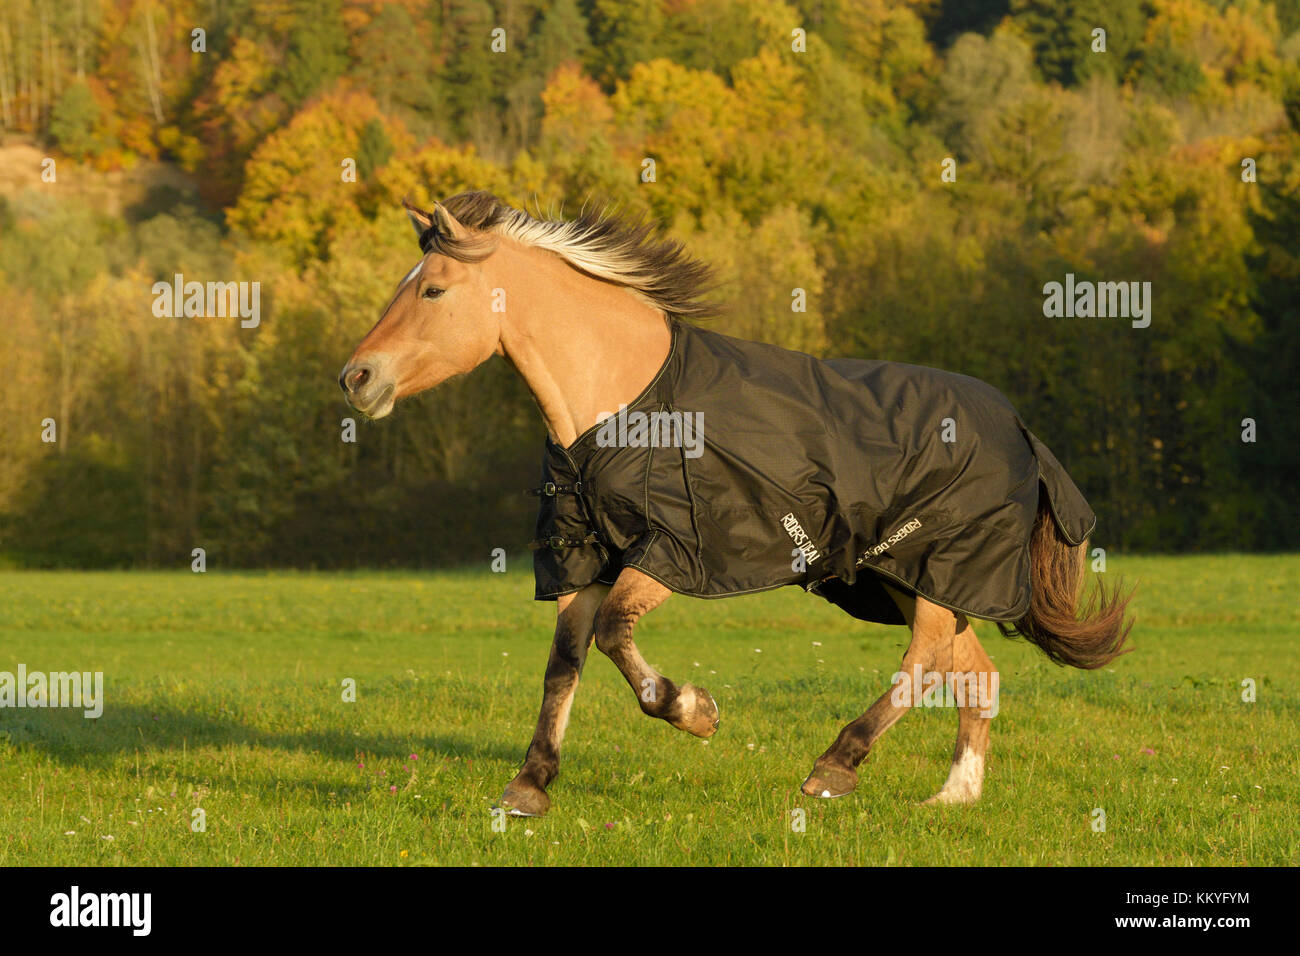 Fjord horse wearing a rug cantering in the field in autumn - Stock Image